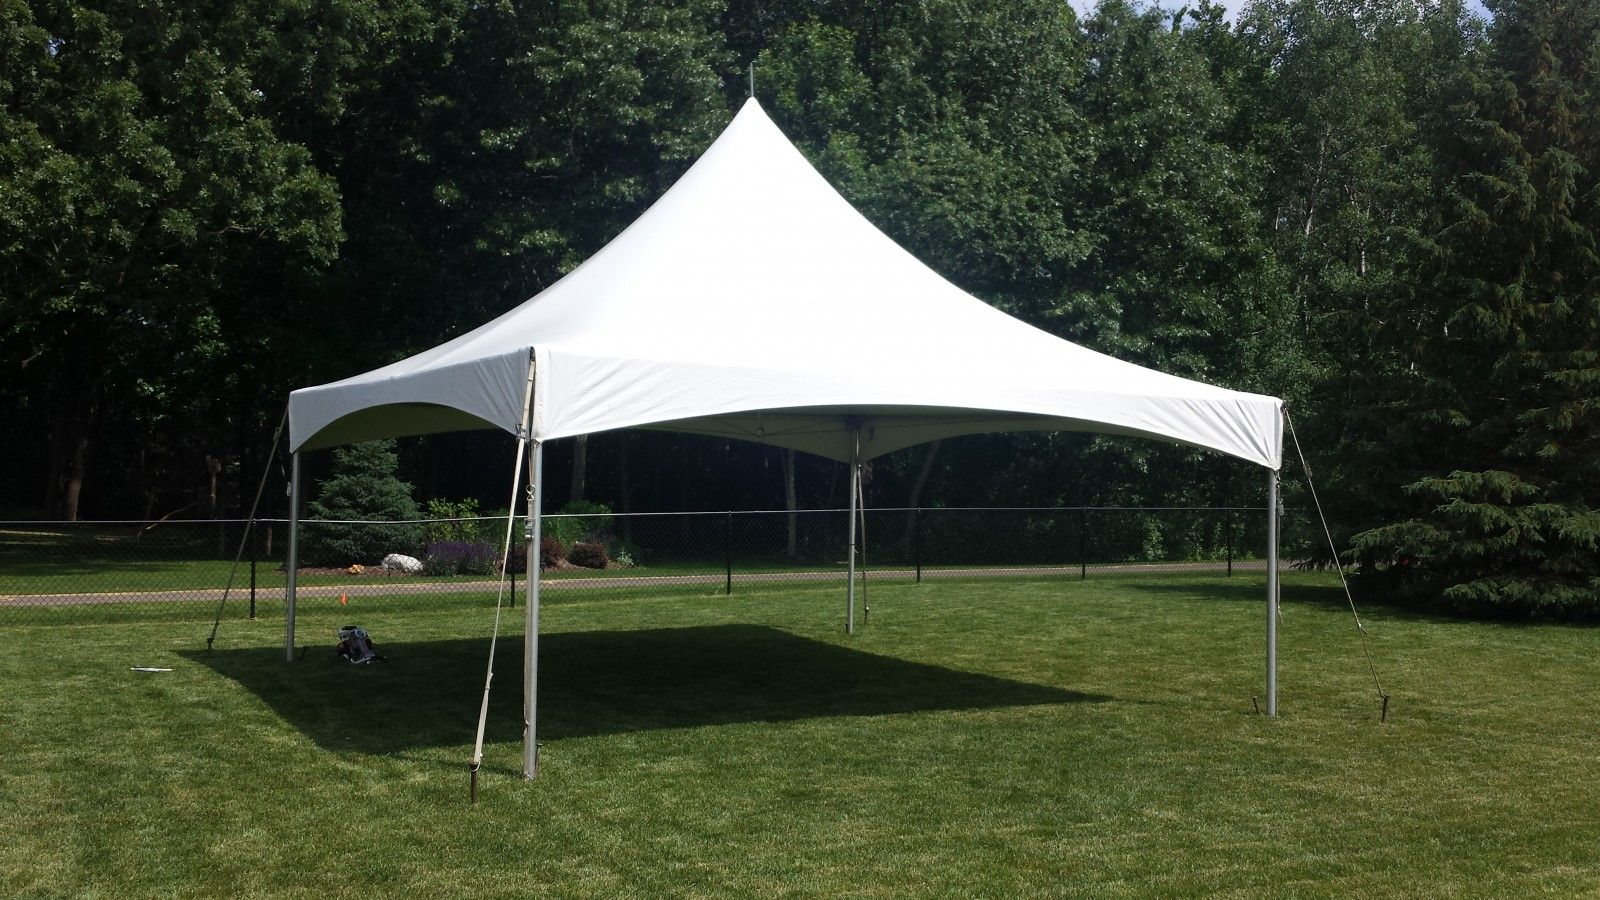 High Peak Cable Canopy 20 X 20 Tent Broadway Party Tent Rental Party Tent Tent Rentals Party Tent Rentals